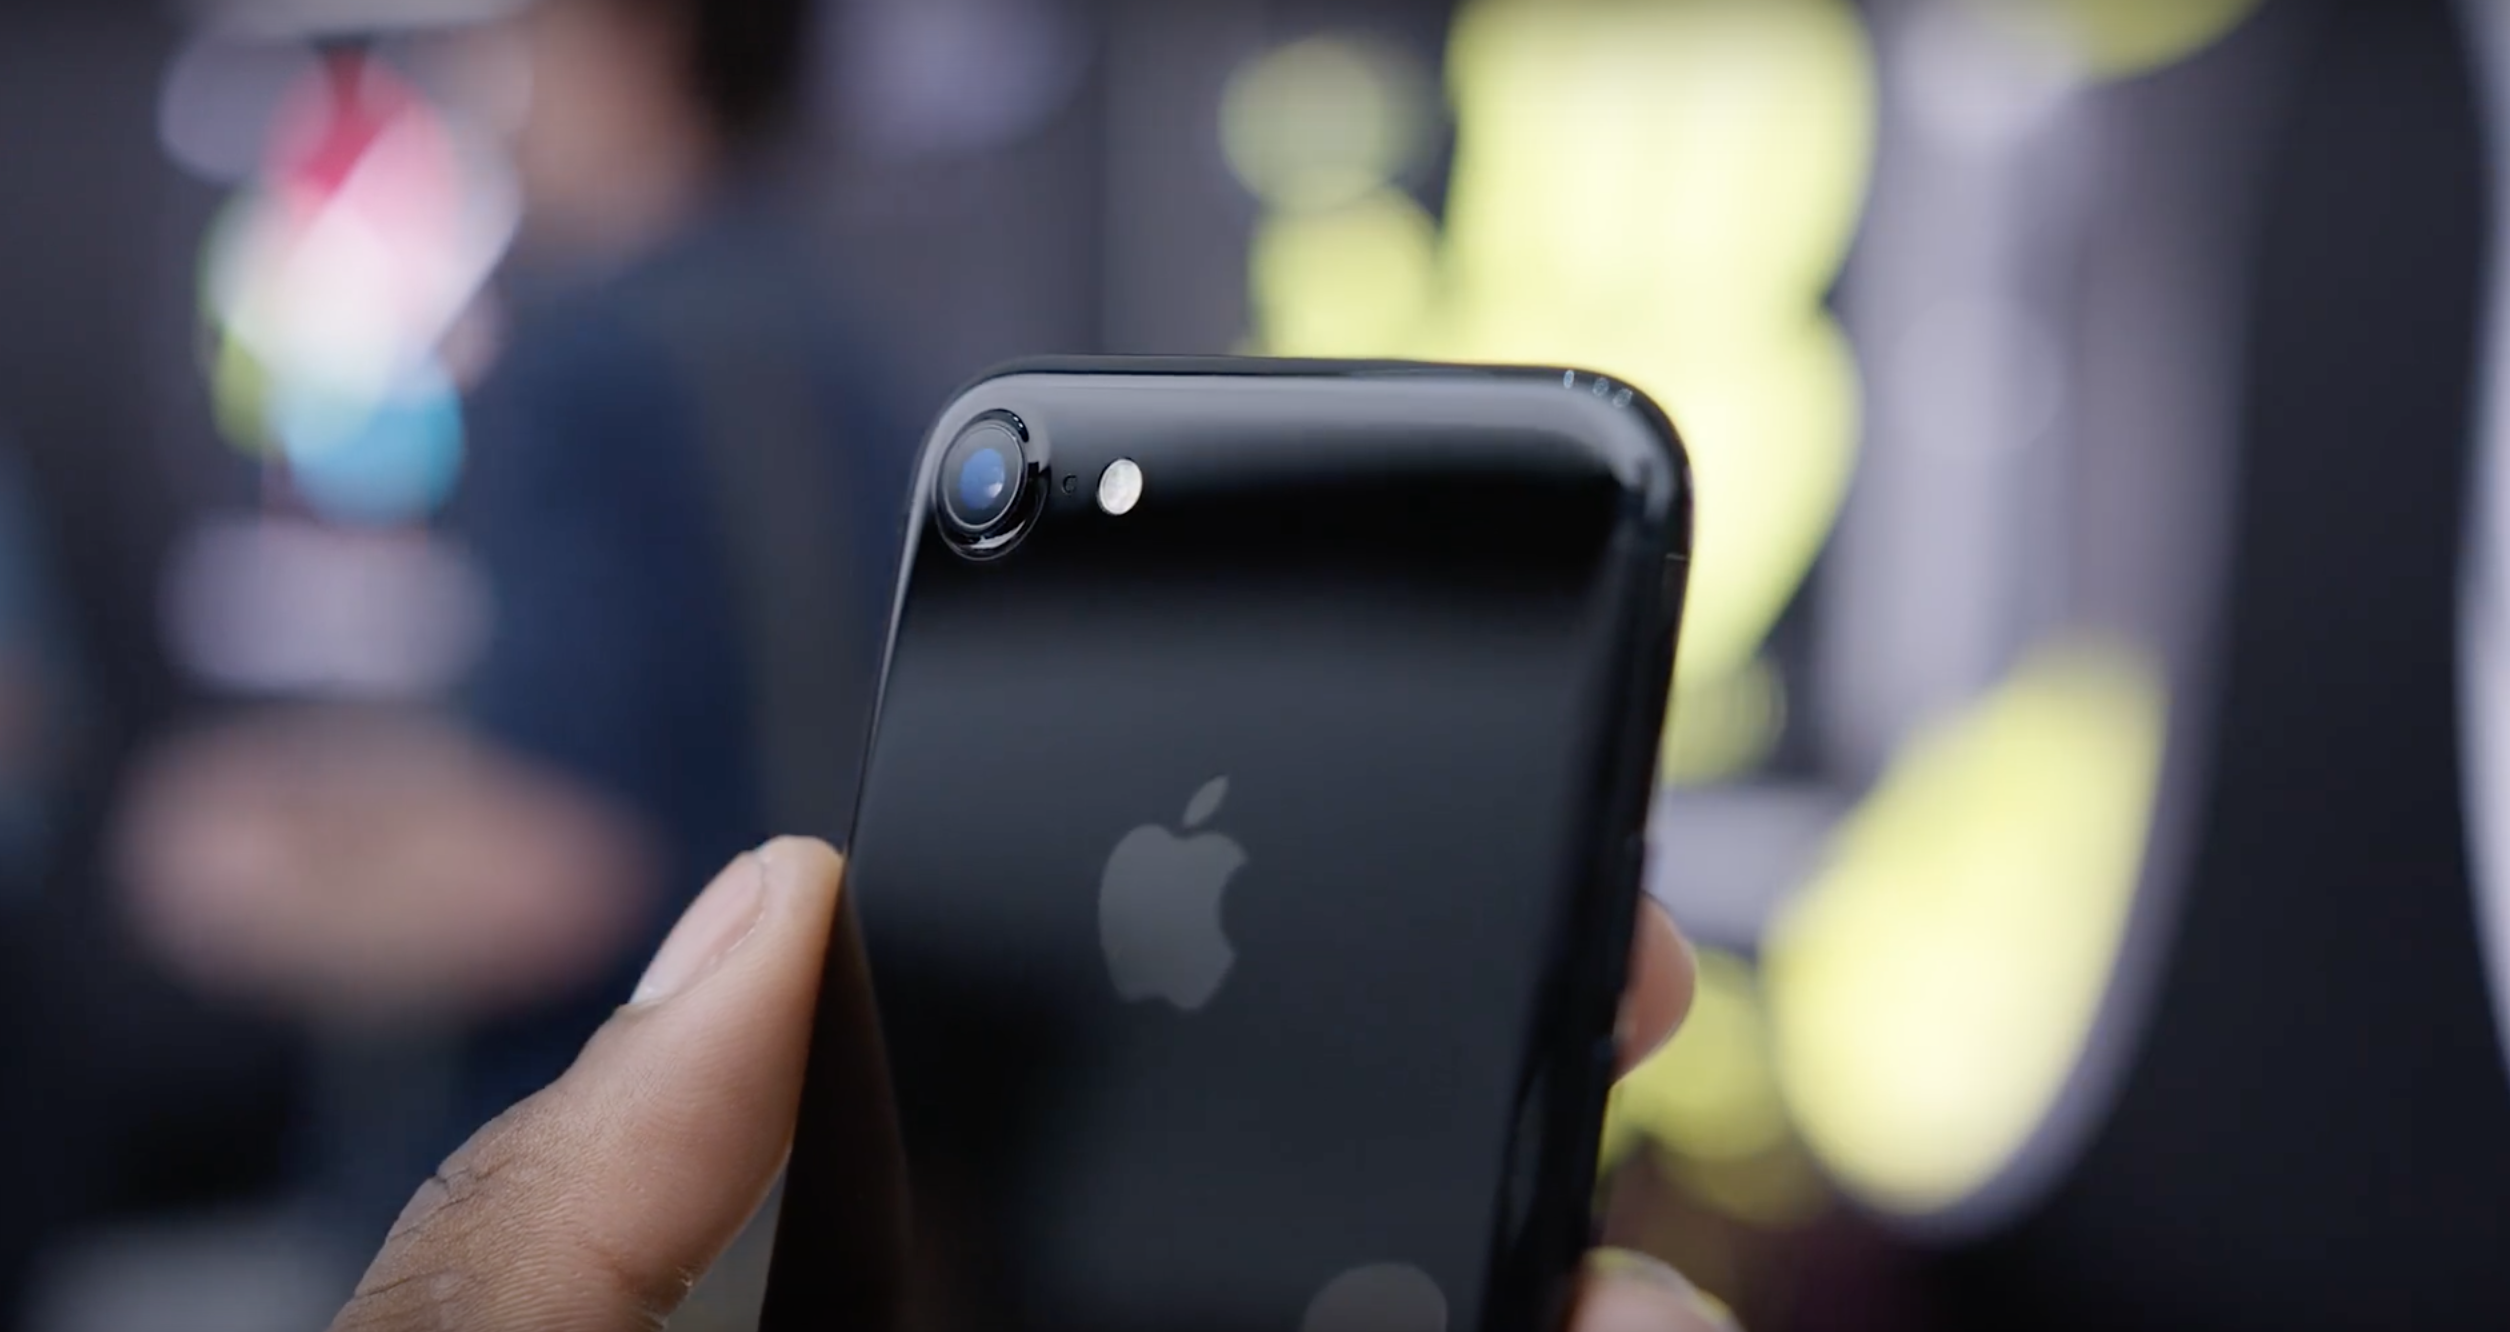 What is interesting is hiding the iPhone 7